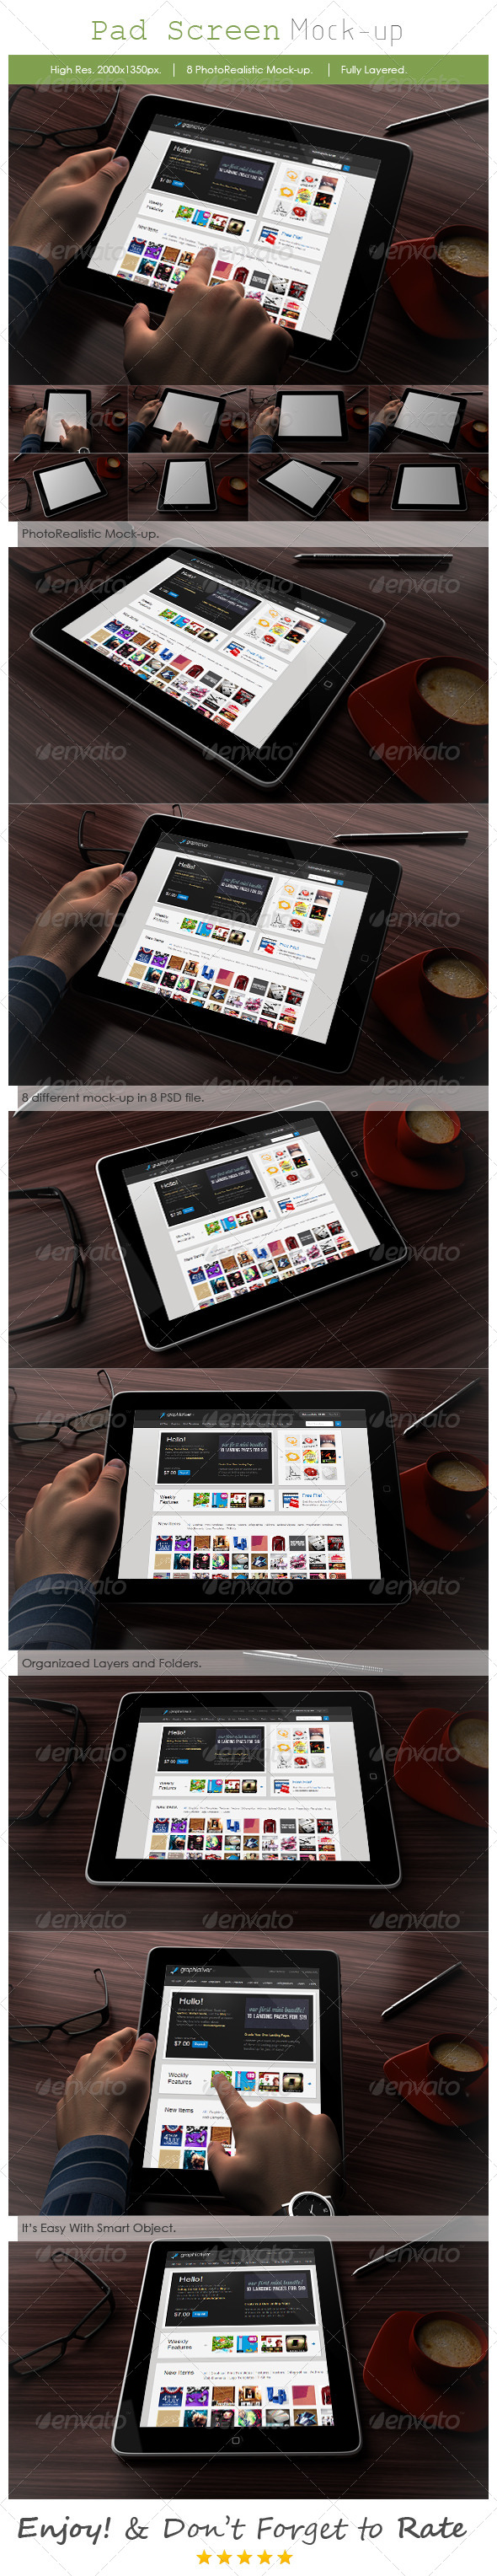 Tablet Mockup Design - Mobile Displays